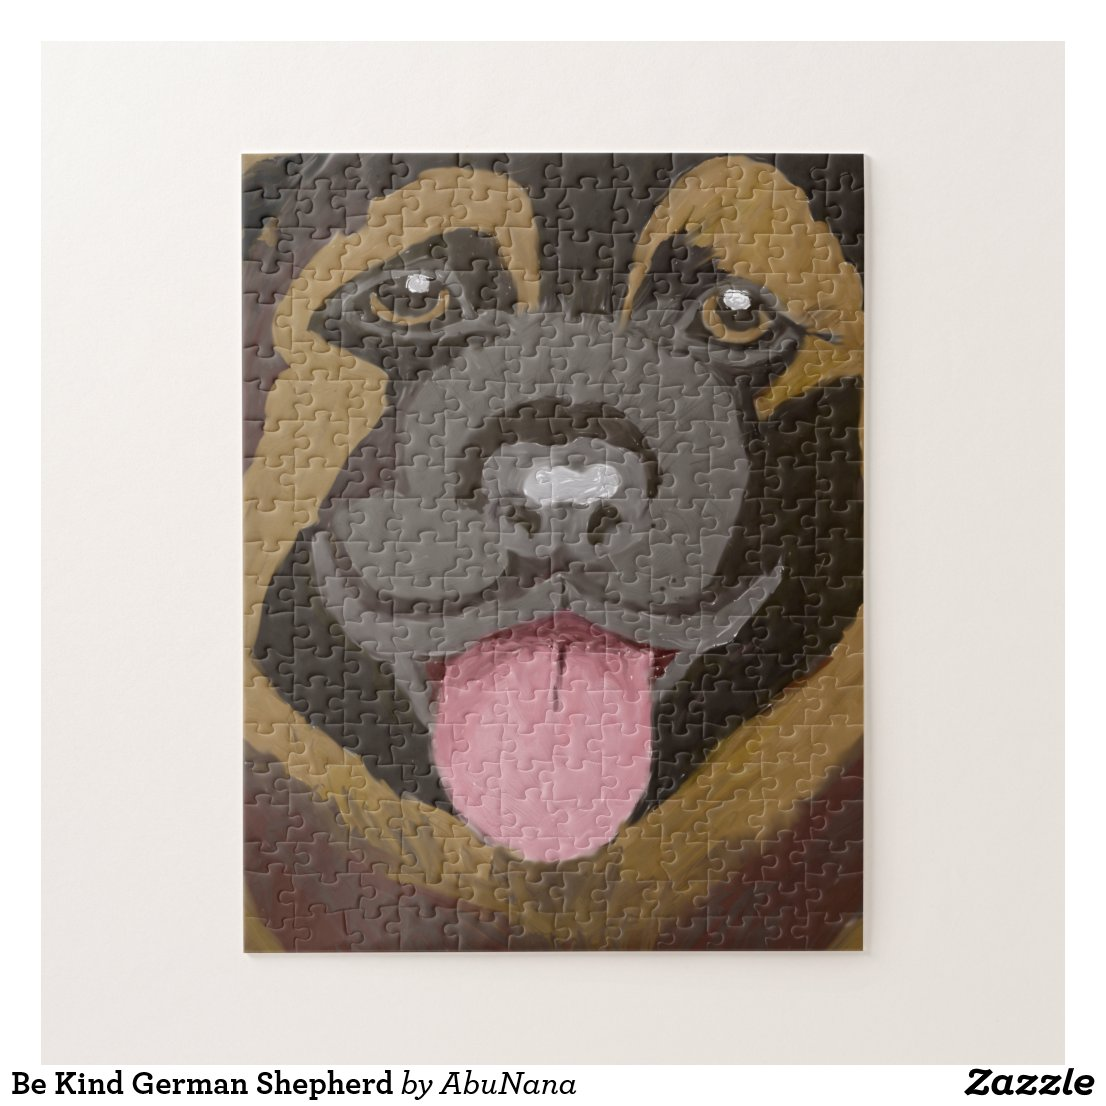 Be Kind German Shepherd Jigsaw Puzzle